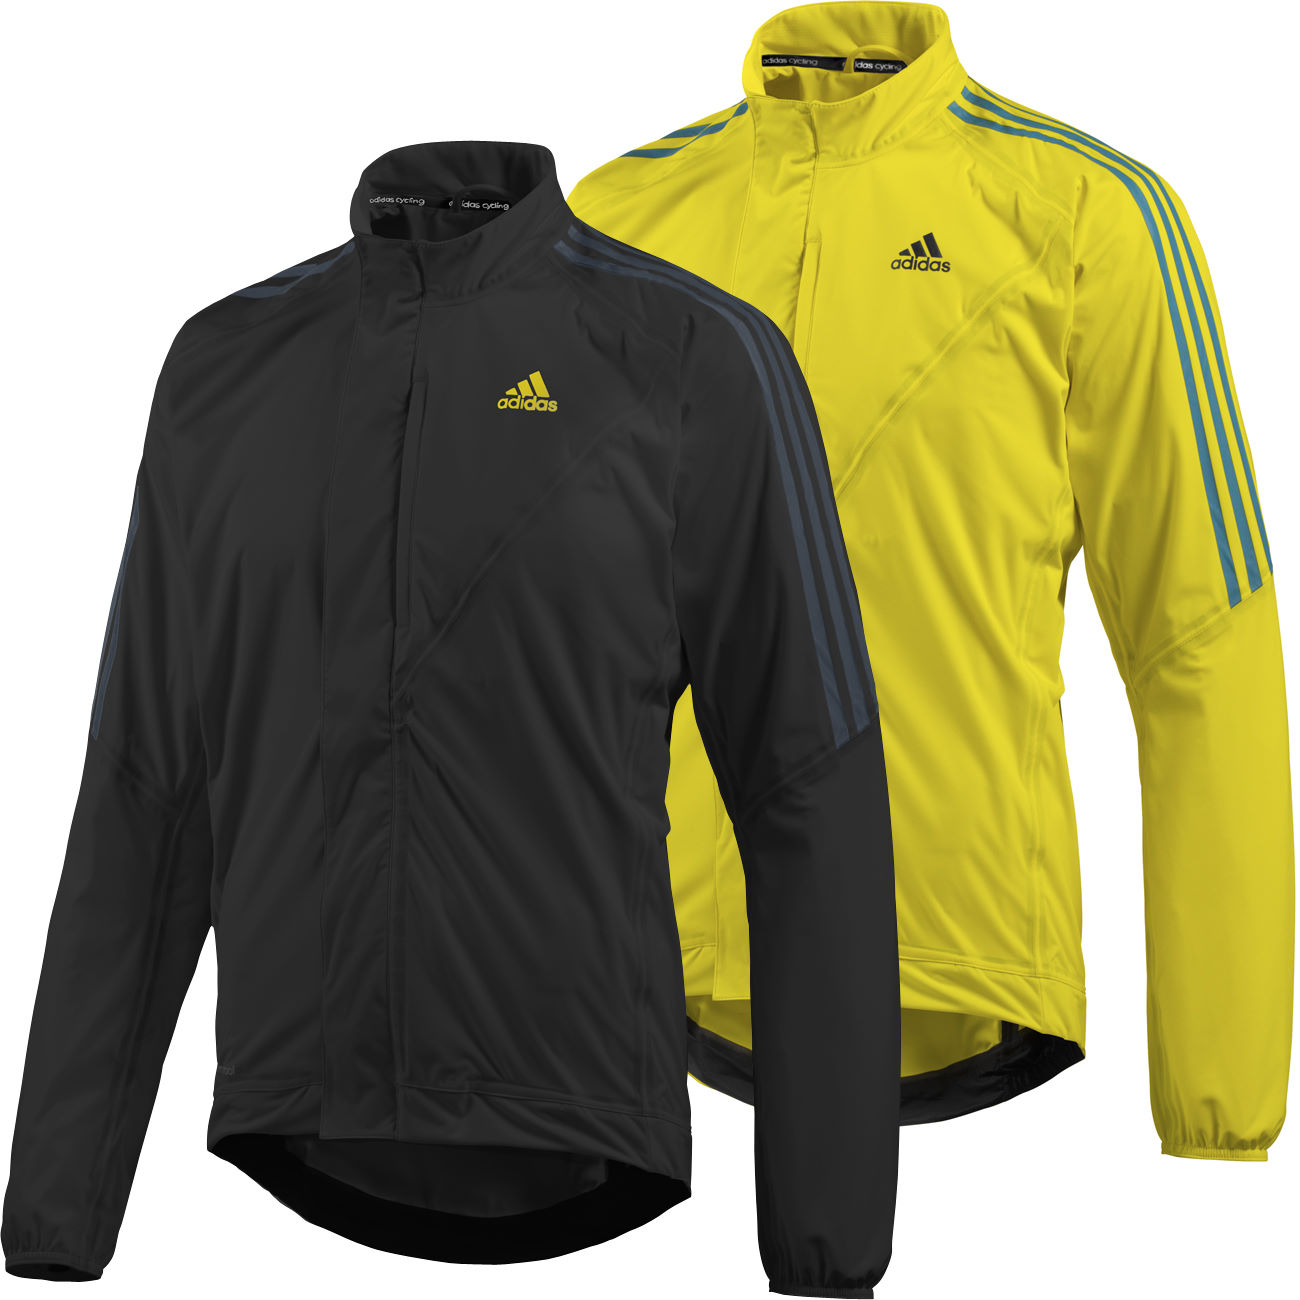 Adidas Tour Waterproof Rain Jacket   Cycling Waterproof Jackets